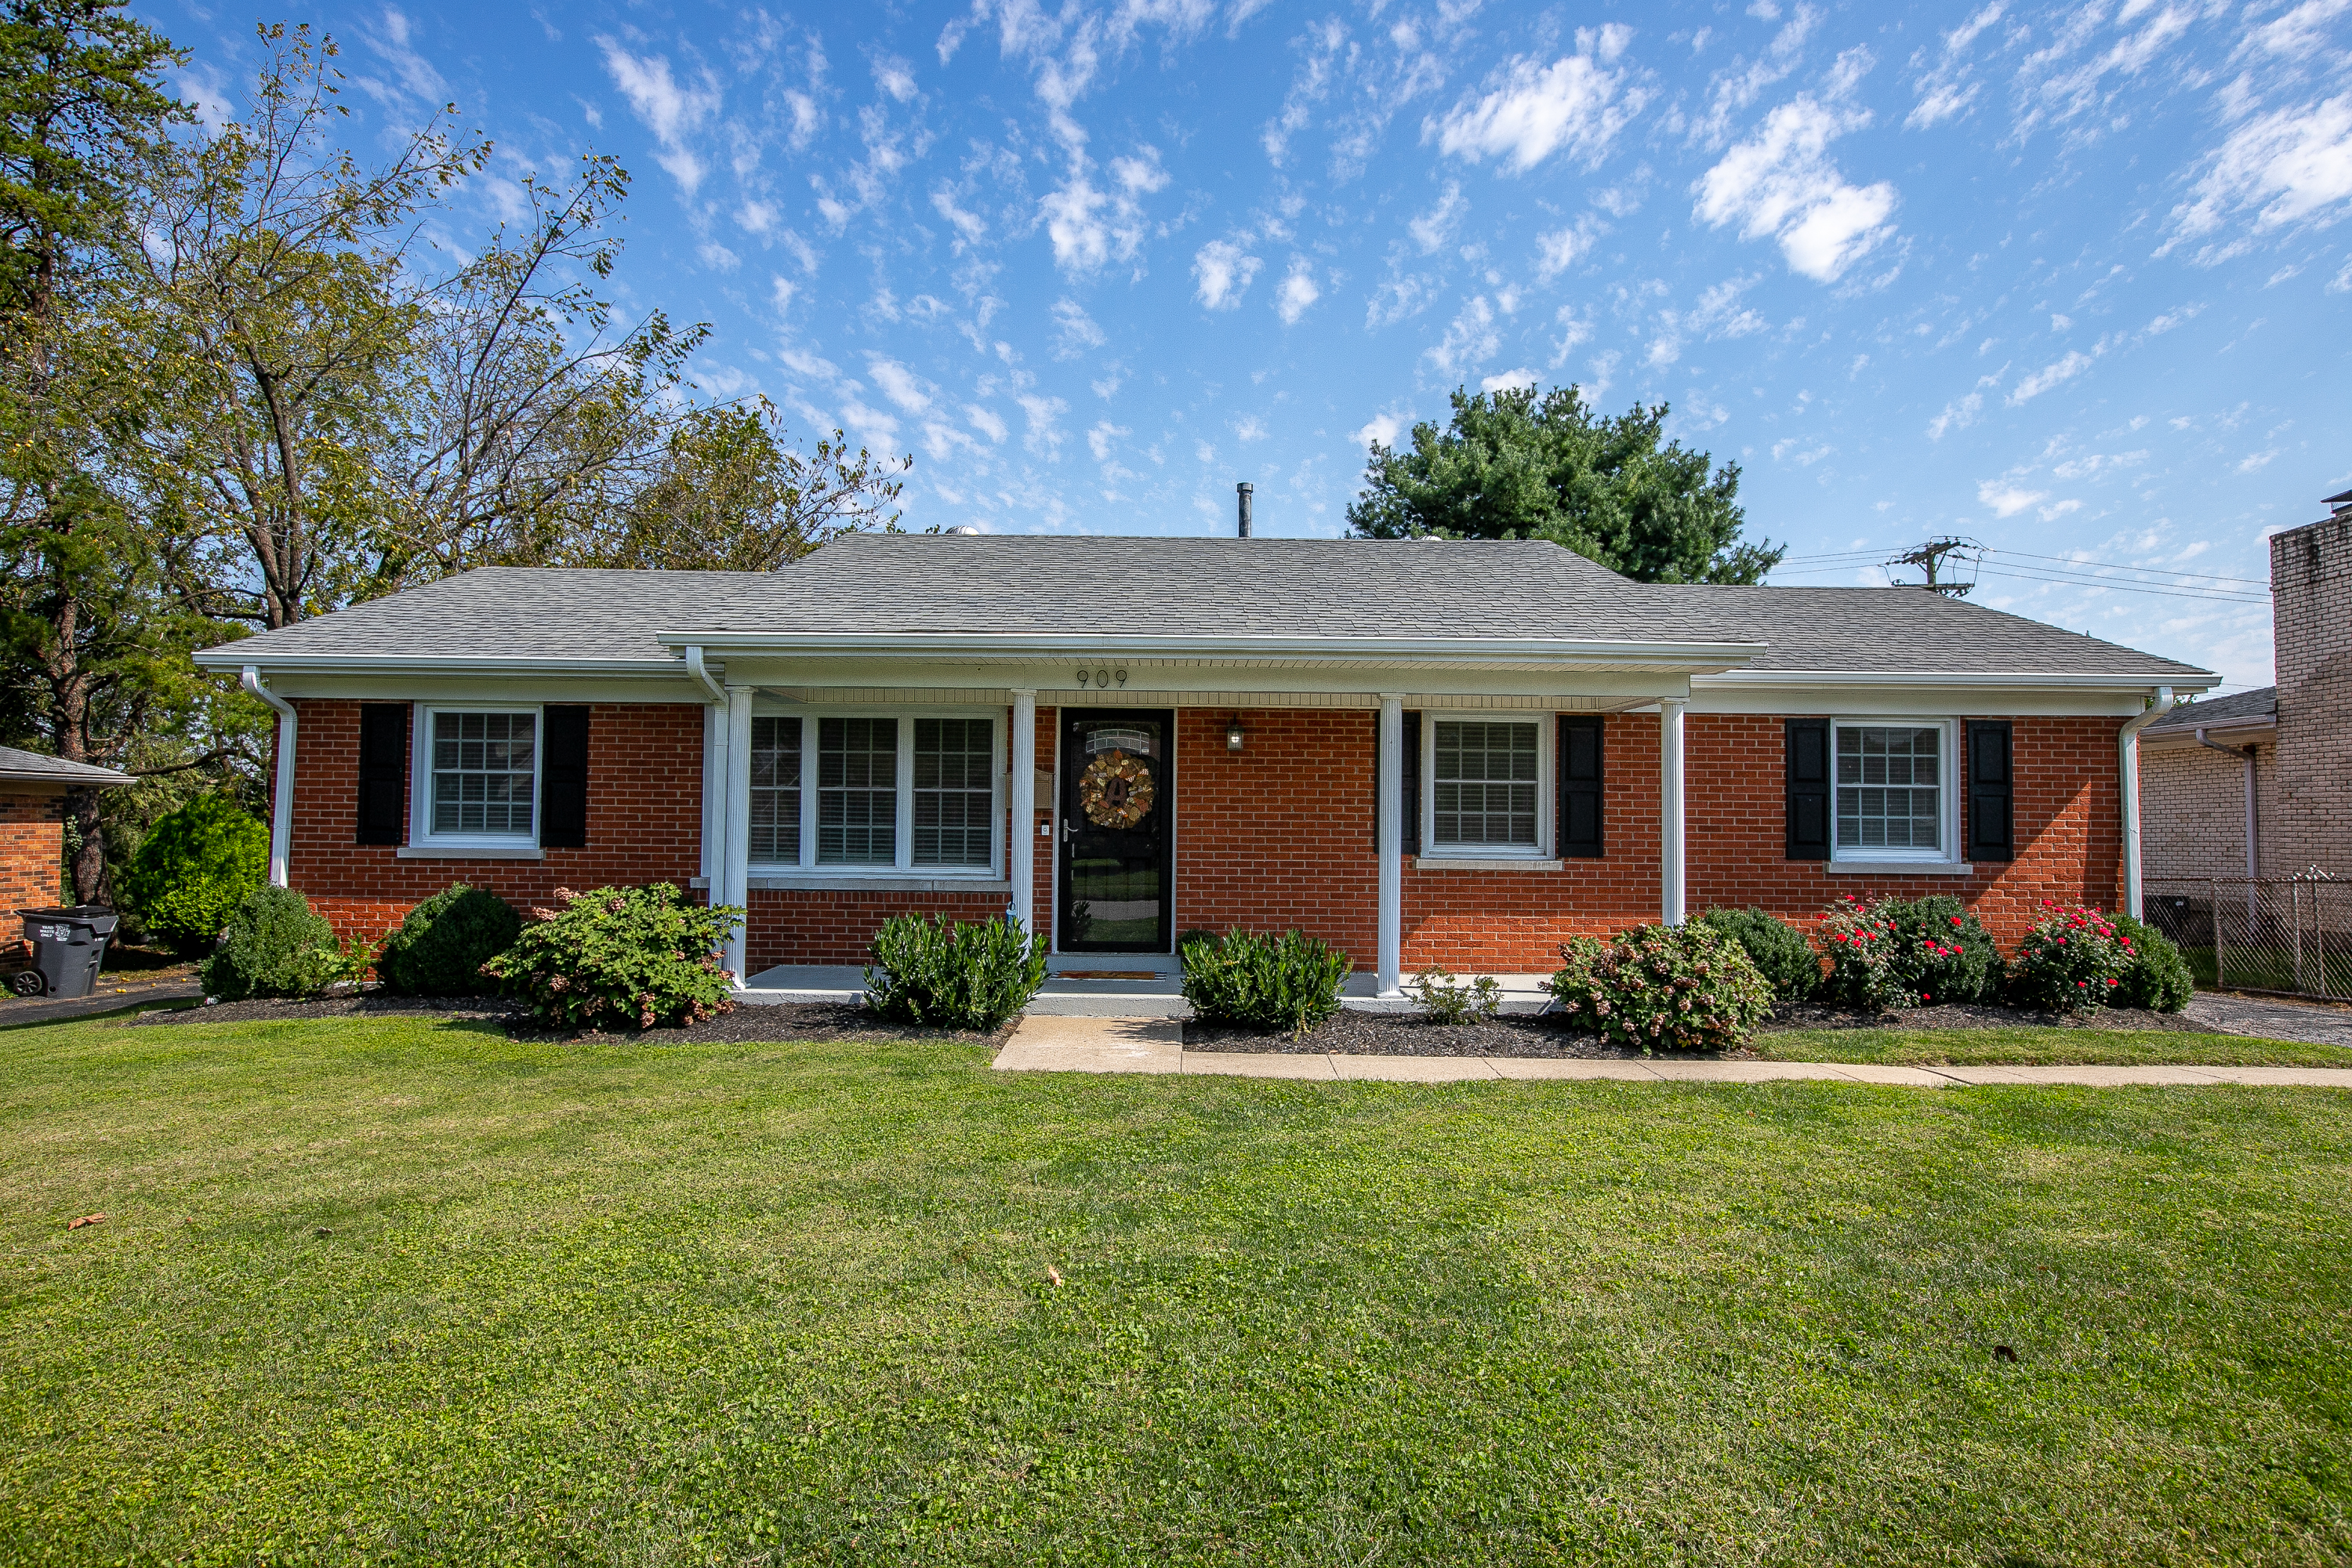 picture of 909 Lily Drive in Lexington, KY 40504, Ranch home listed by Kim Soper Realtor